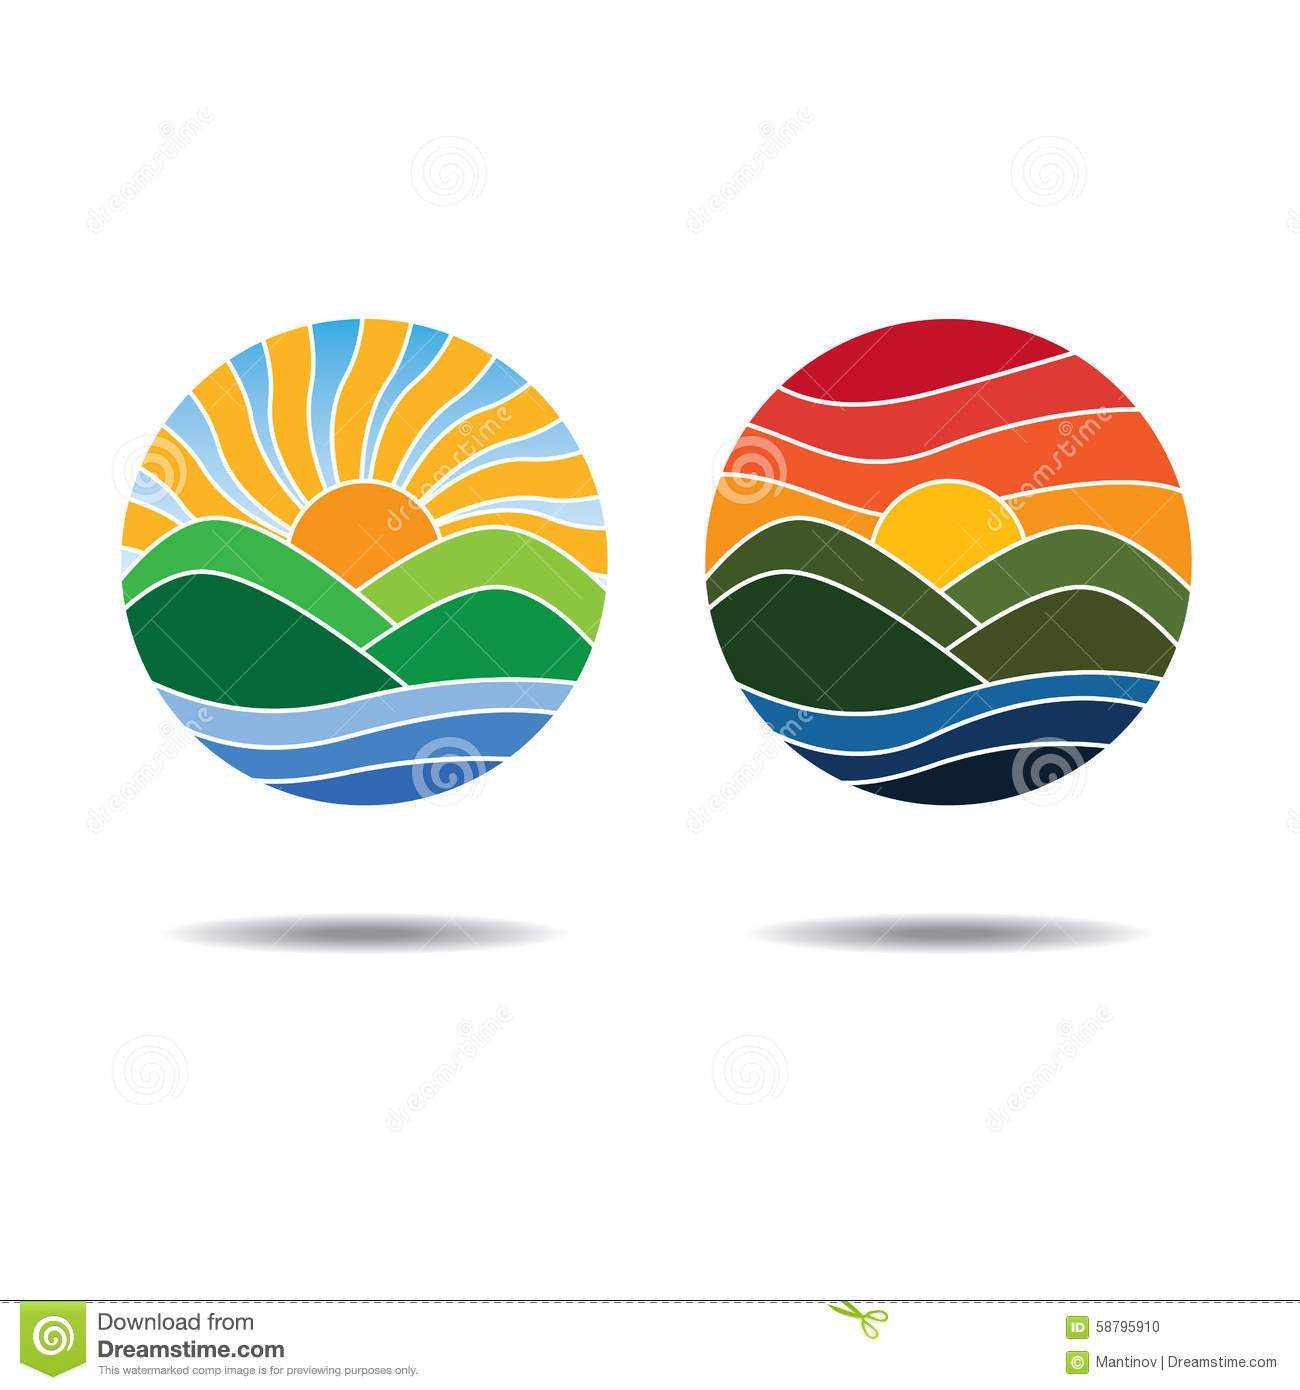 Sunrise and sunset clipart 1 » Clipart Portal.